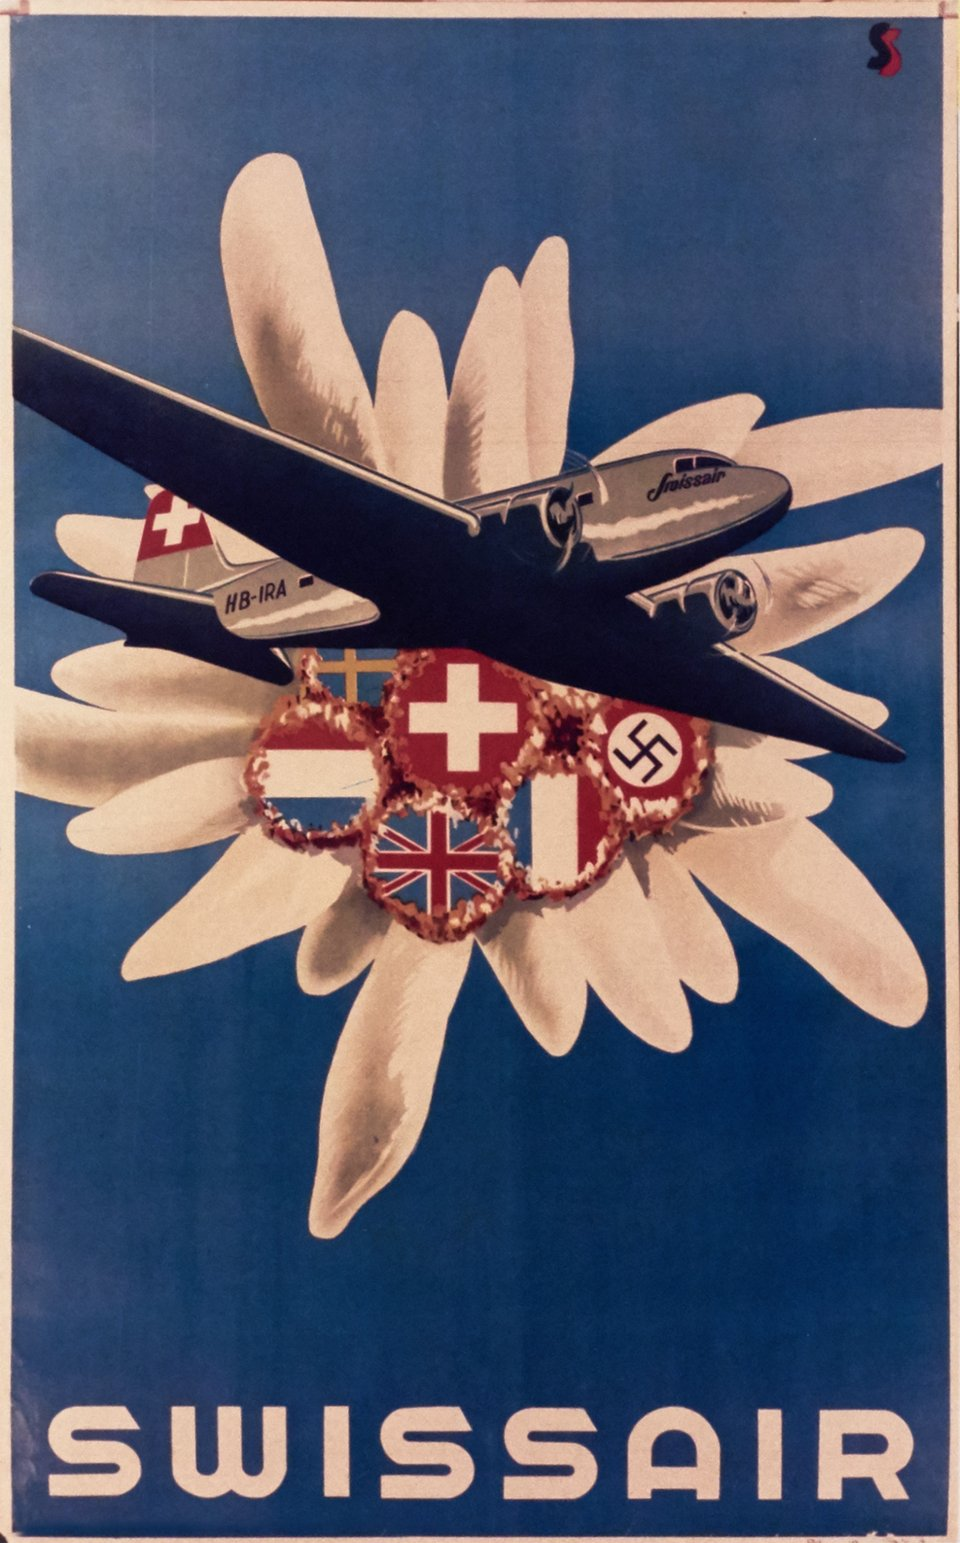 Swissair DC-3 – Affiche ancienne – SS, Studio SELECTION – 1938